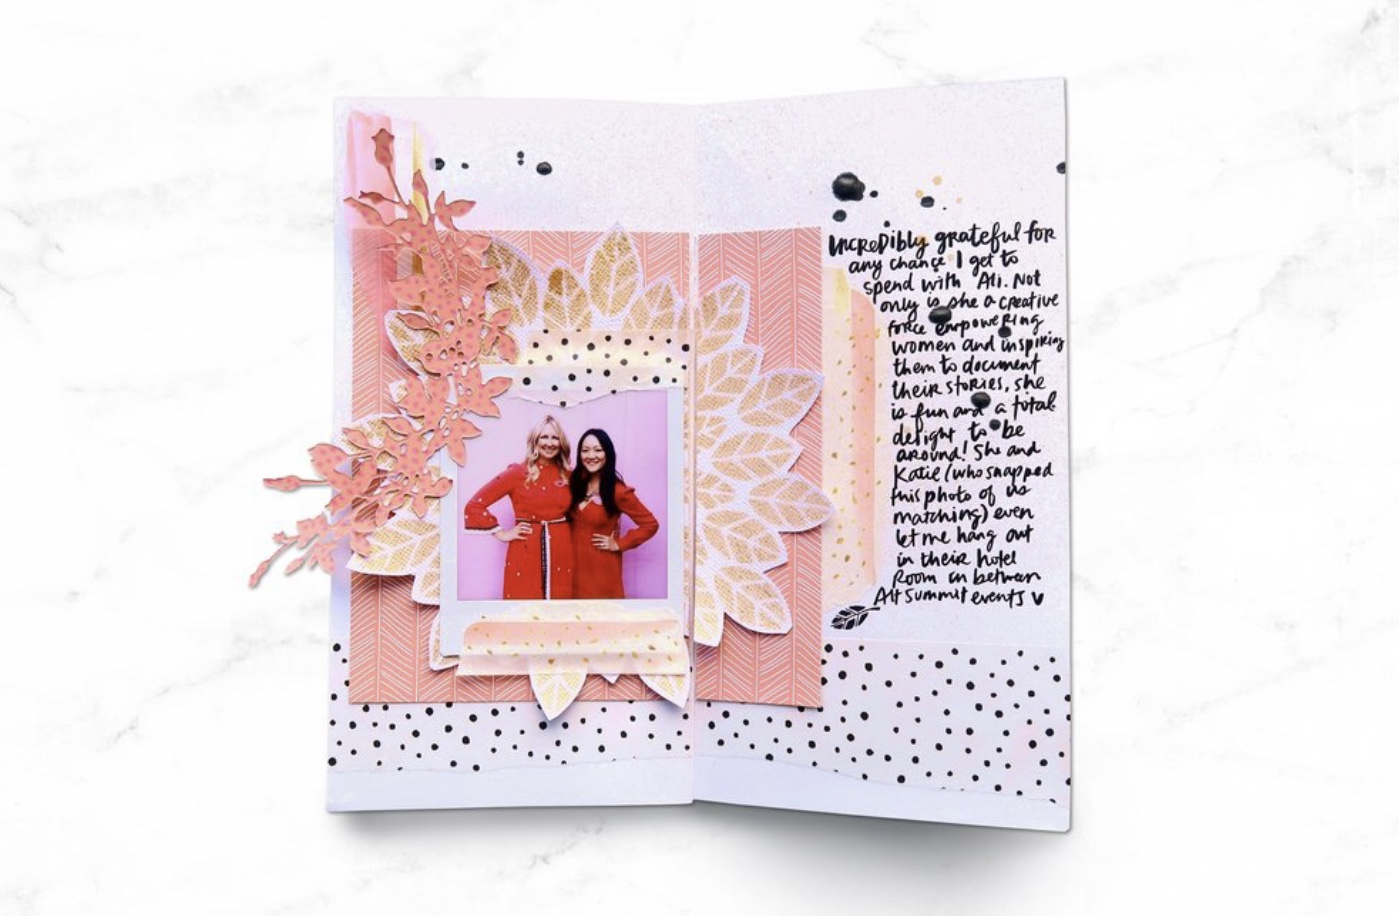 For more ideas and specific instructions for how to achieve this traveler's notebook spread using Altenew products, check out my  blog post  from earlier this year.